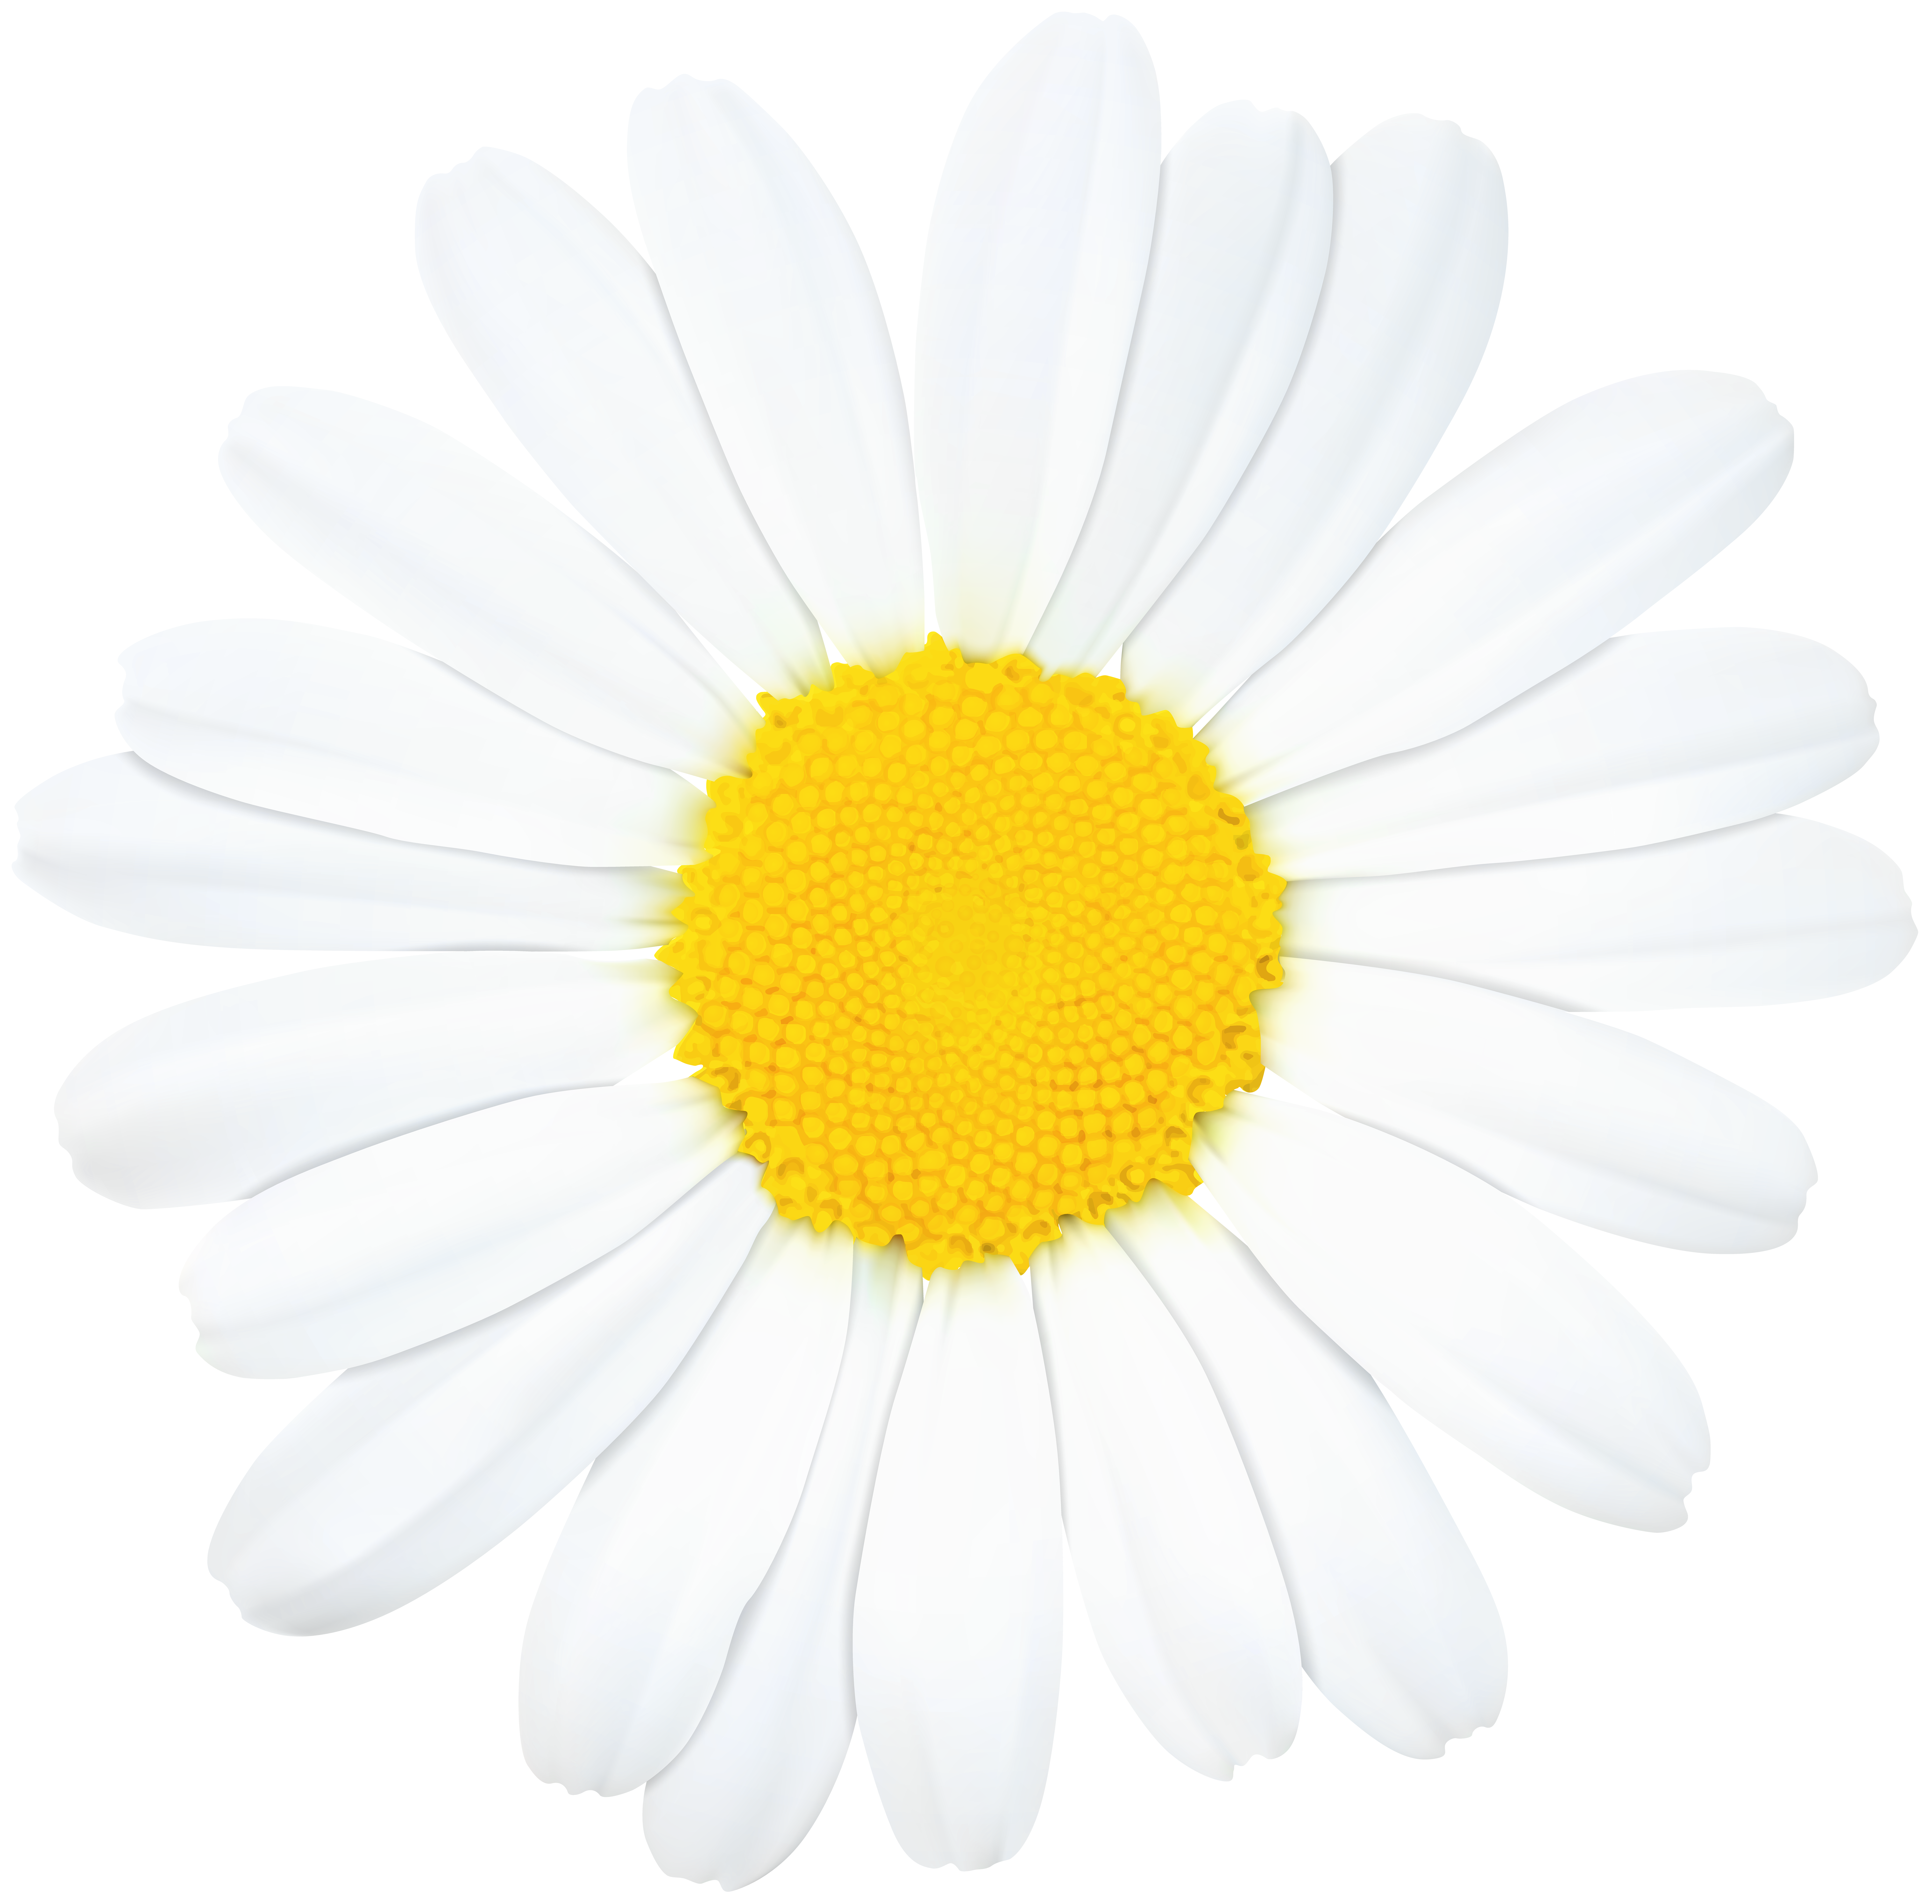 Daisy flower clipart png svg library download Daisy Flower PNG Clip Art Image | Gallery Yopriceville - High ... svg library download